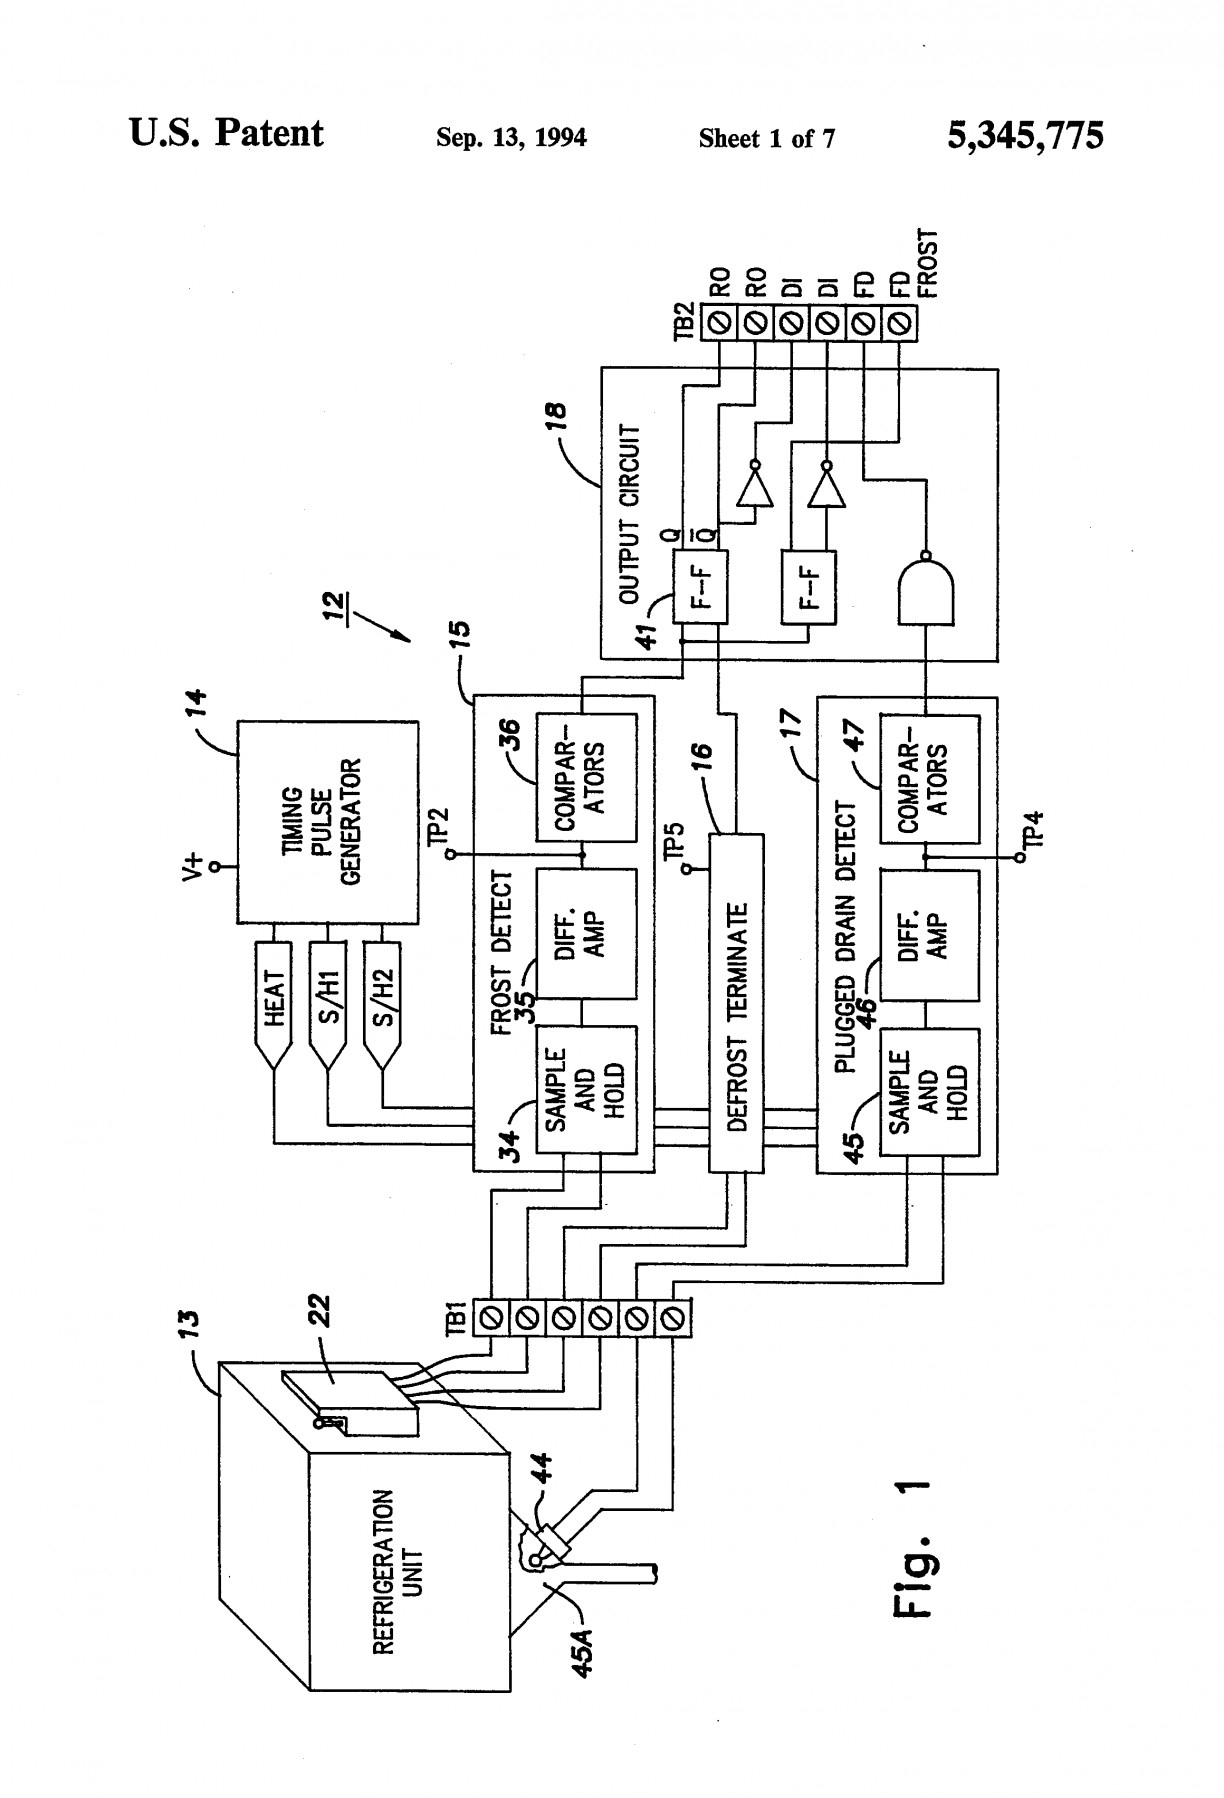 russell evaporator wiring diagram Collection-Russell Evaporator Wiring Diagram Wiring Diagram • 2-m